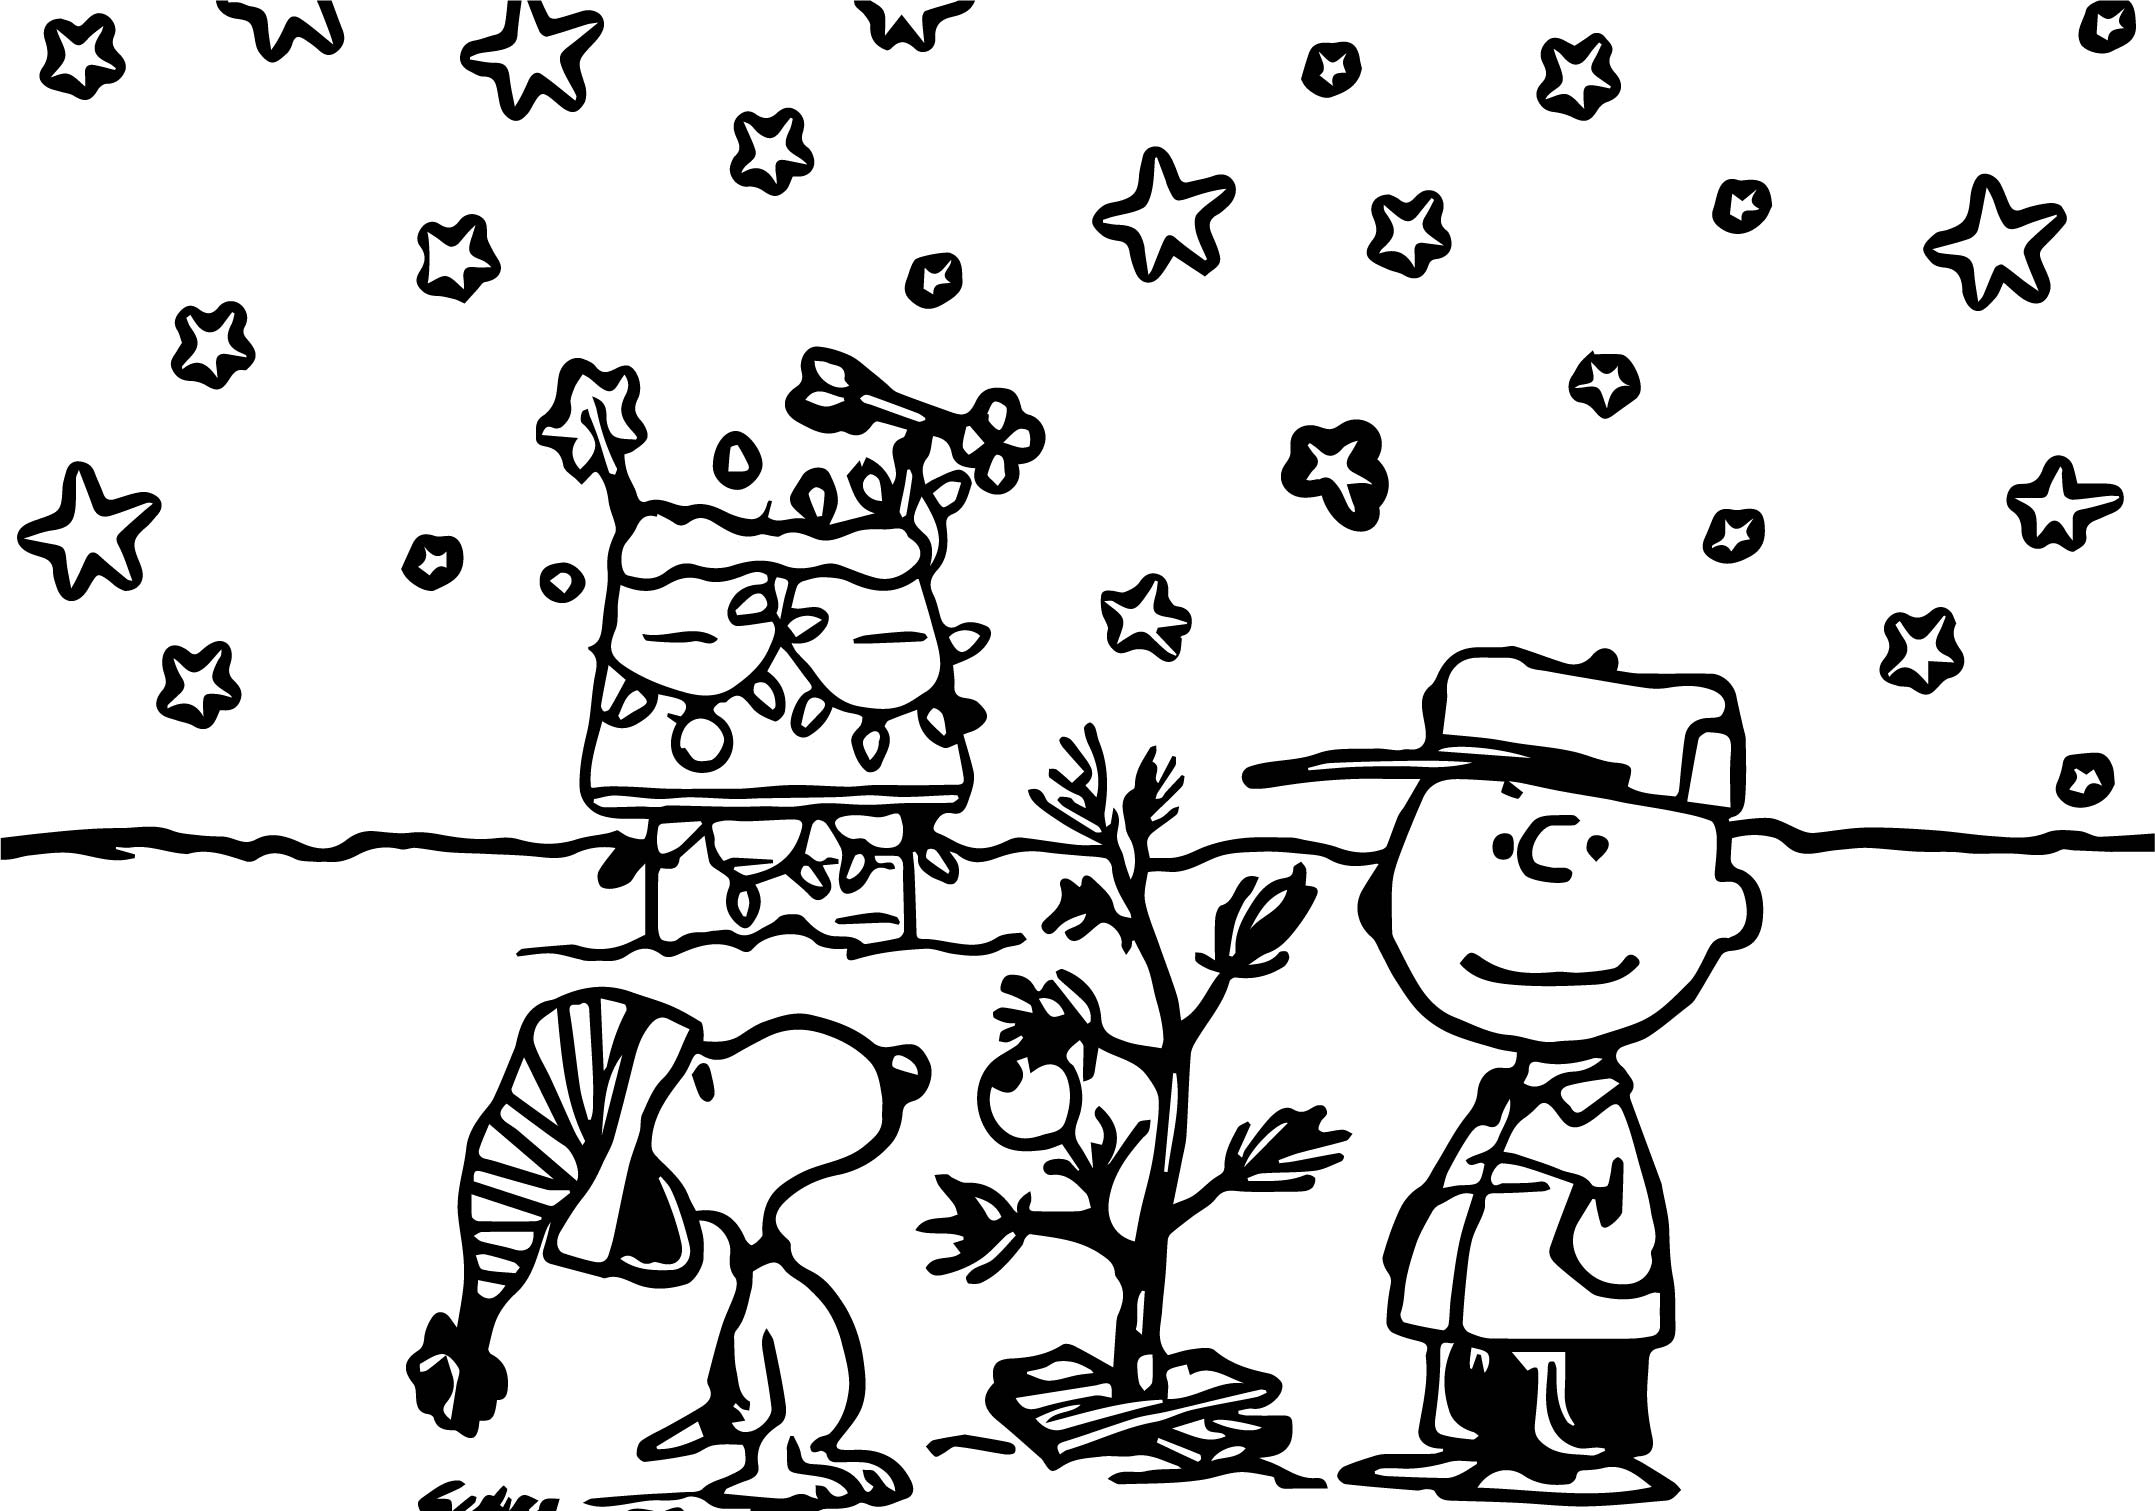 Christmas Robot Coloring Pages With Snoopy And Charlie Brown Brs Page